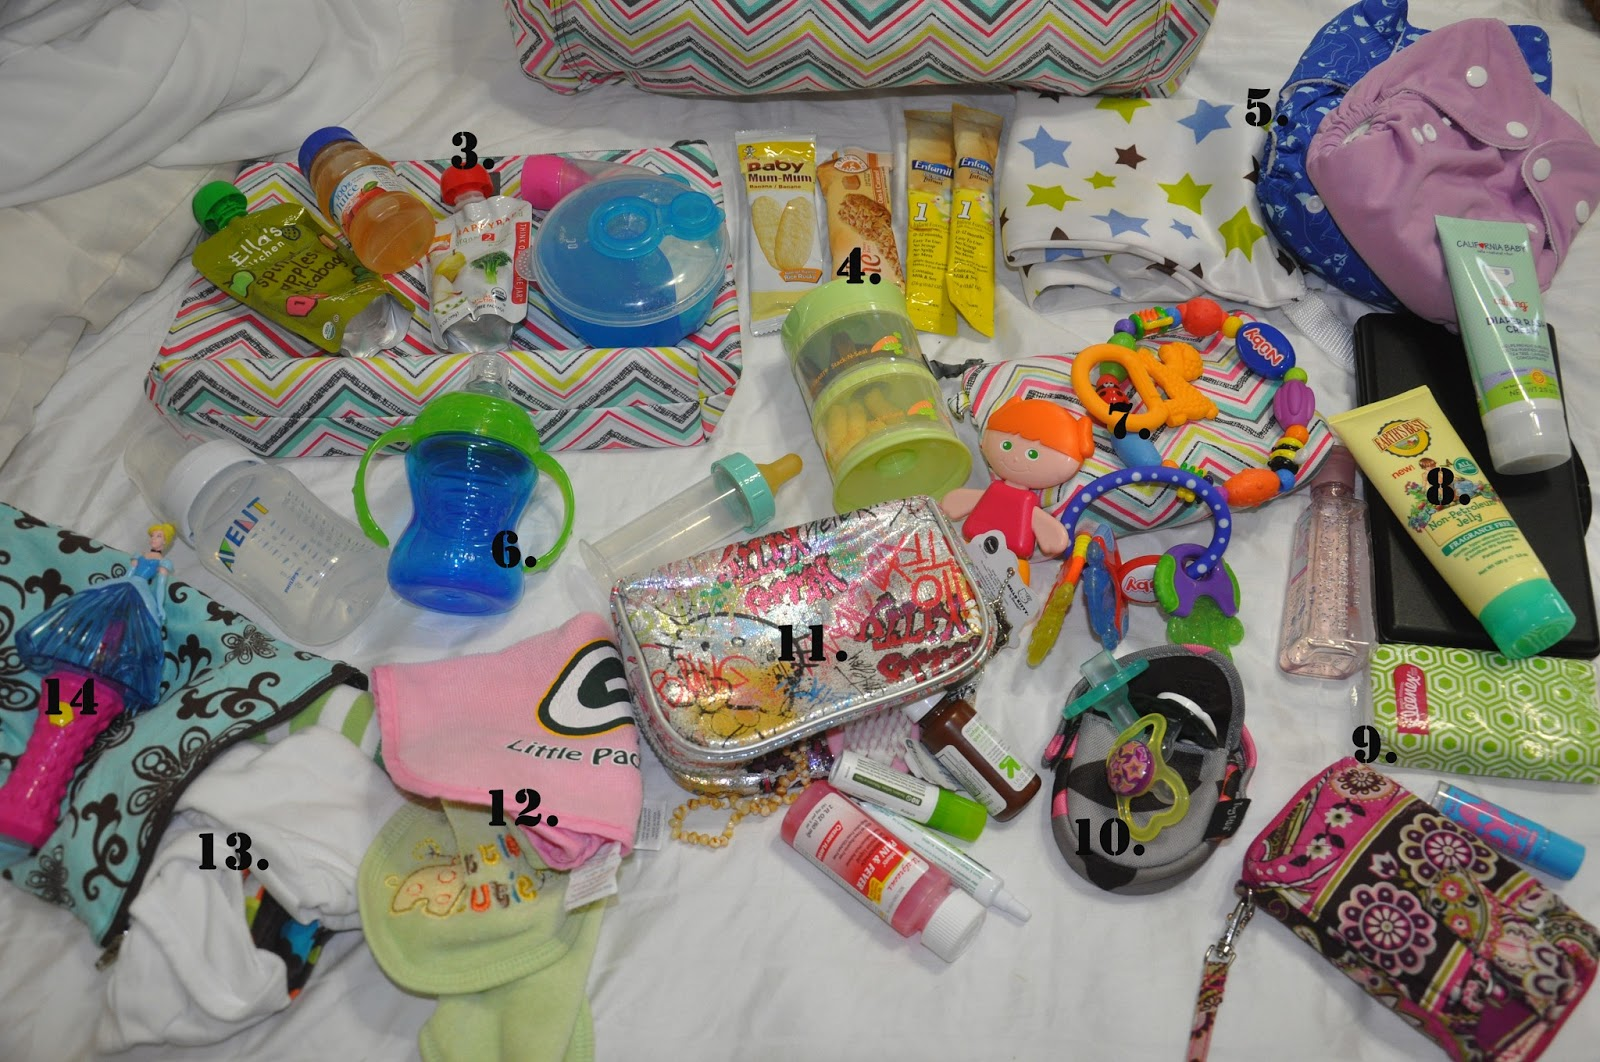 Eager Reborn Sunshine: What's in Your Diaper Bag, Chelsey?